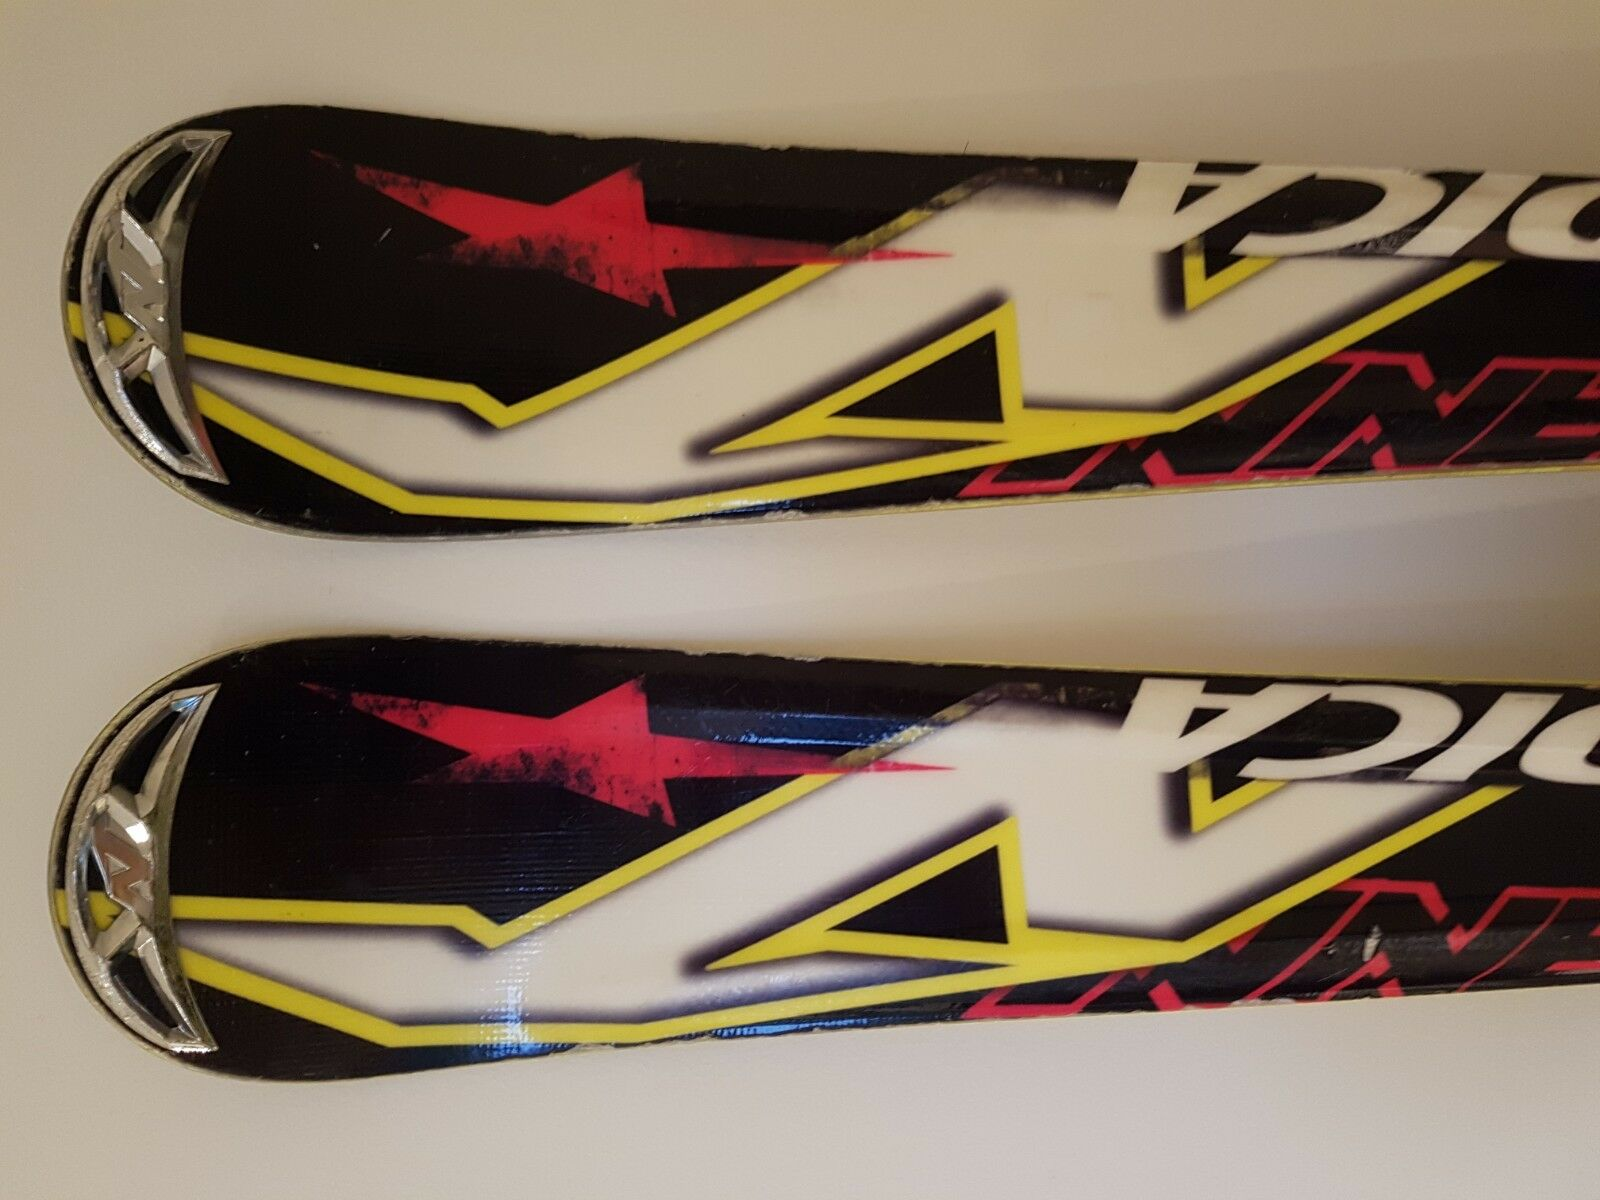 Nordica Spitfire Dobermann Pro 170cm w  integrated bindings Made in Austria 14m